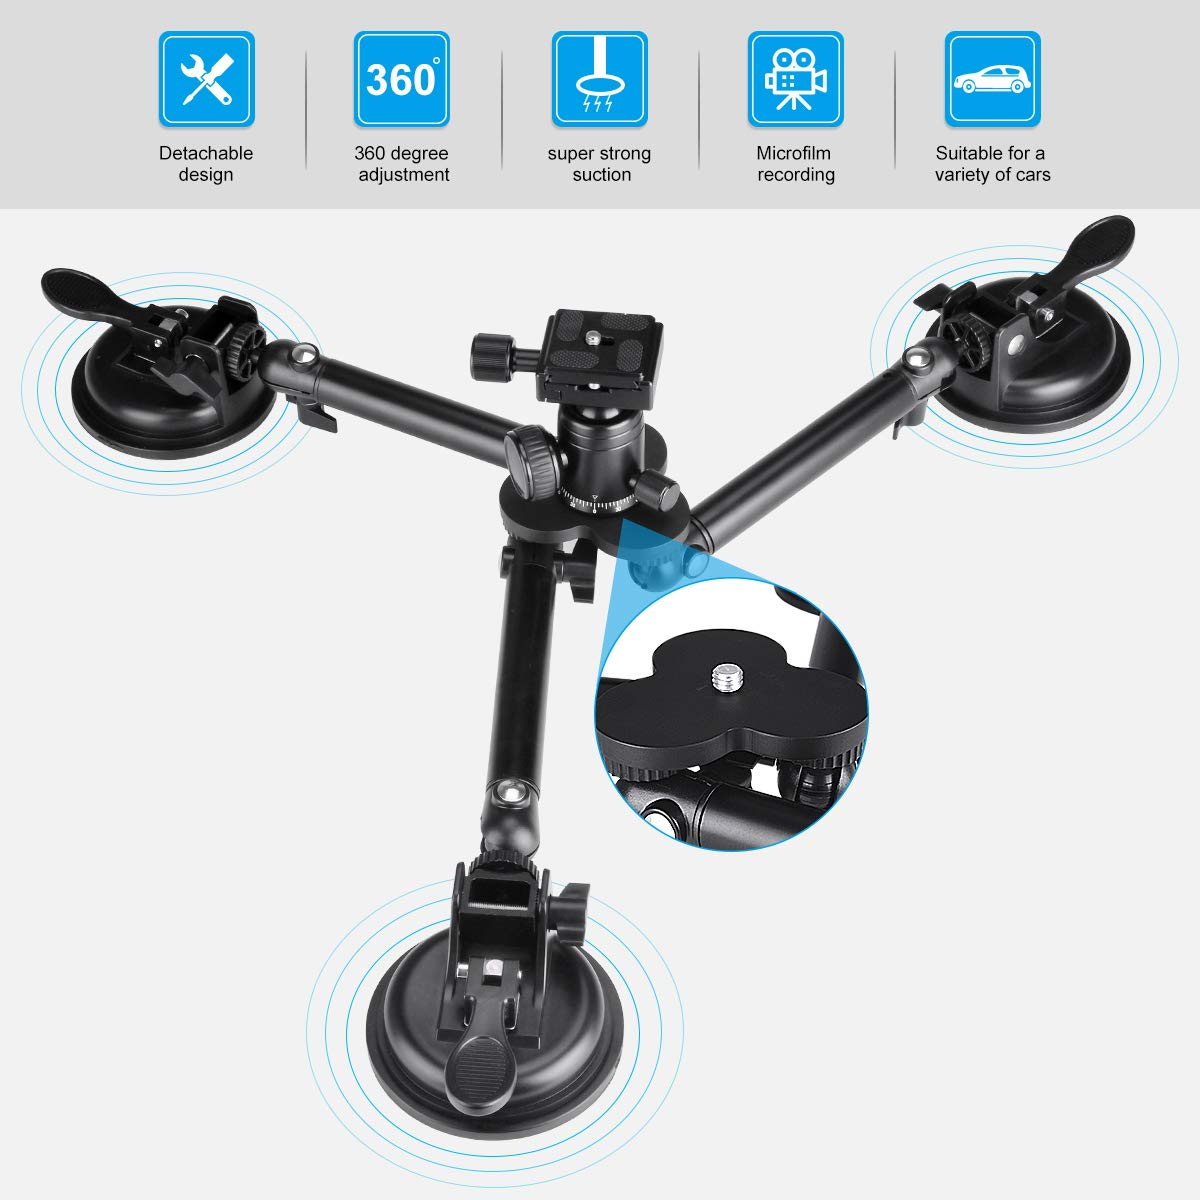 Professional Heavy Duty DSLR Camera Suction Cup Car Mount Camcorder Vehicle Holder w/ Quick Release 360°Panorama Ball Head Compatible with Nikon Canon Sony Mirrorless for Hi-Speed Motion Photography by fantaseal (Image #4)